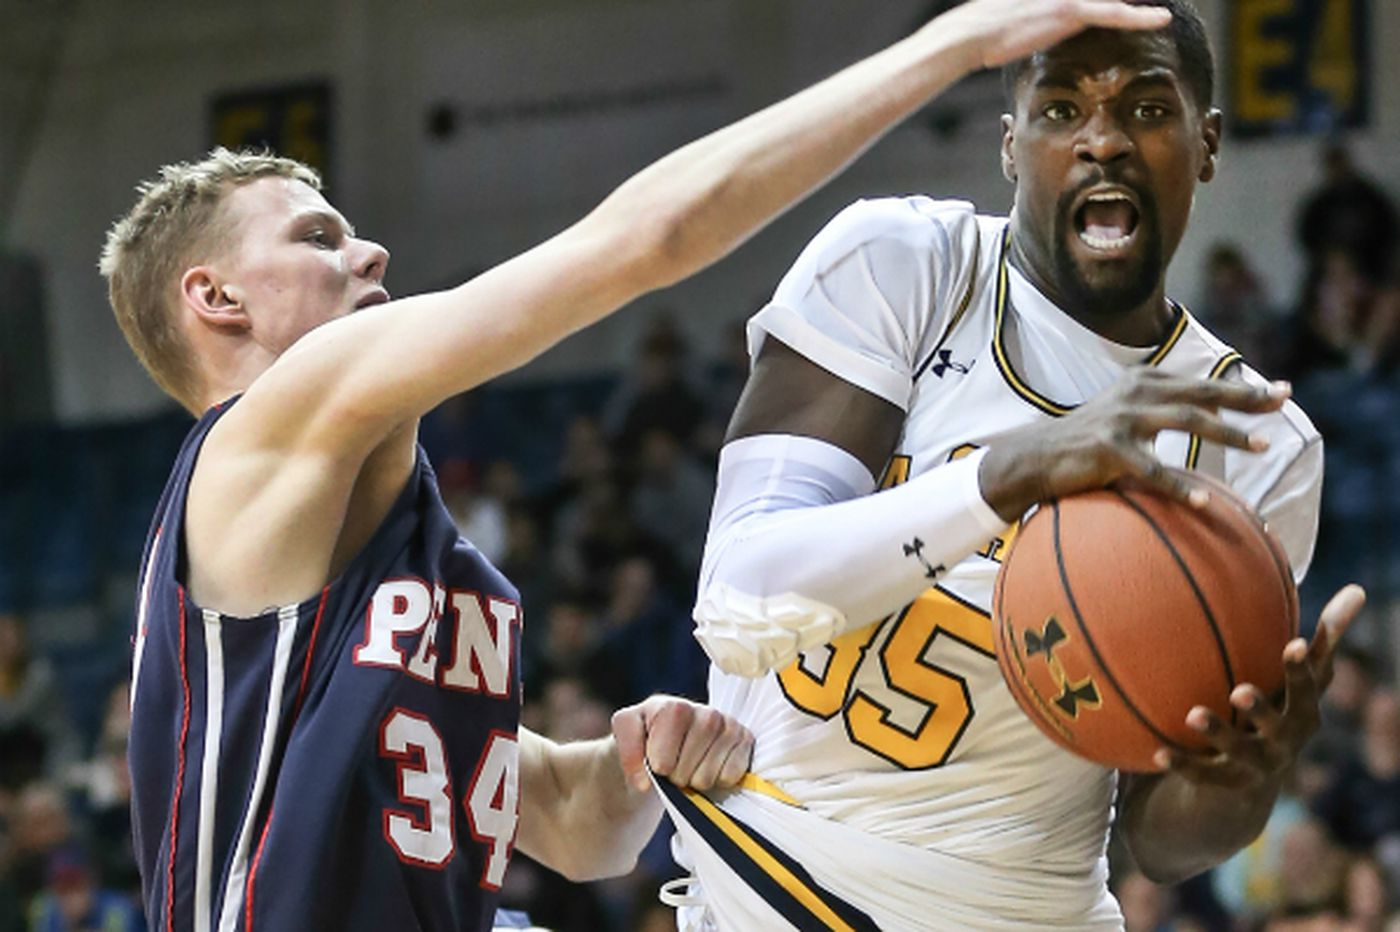 La Salle tops Penn in Big 5 matchup